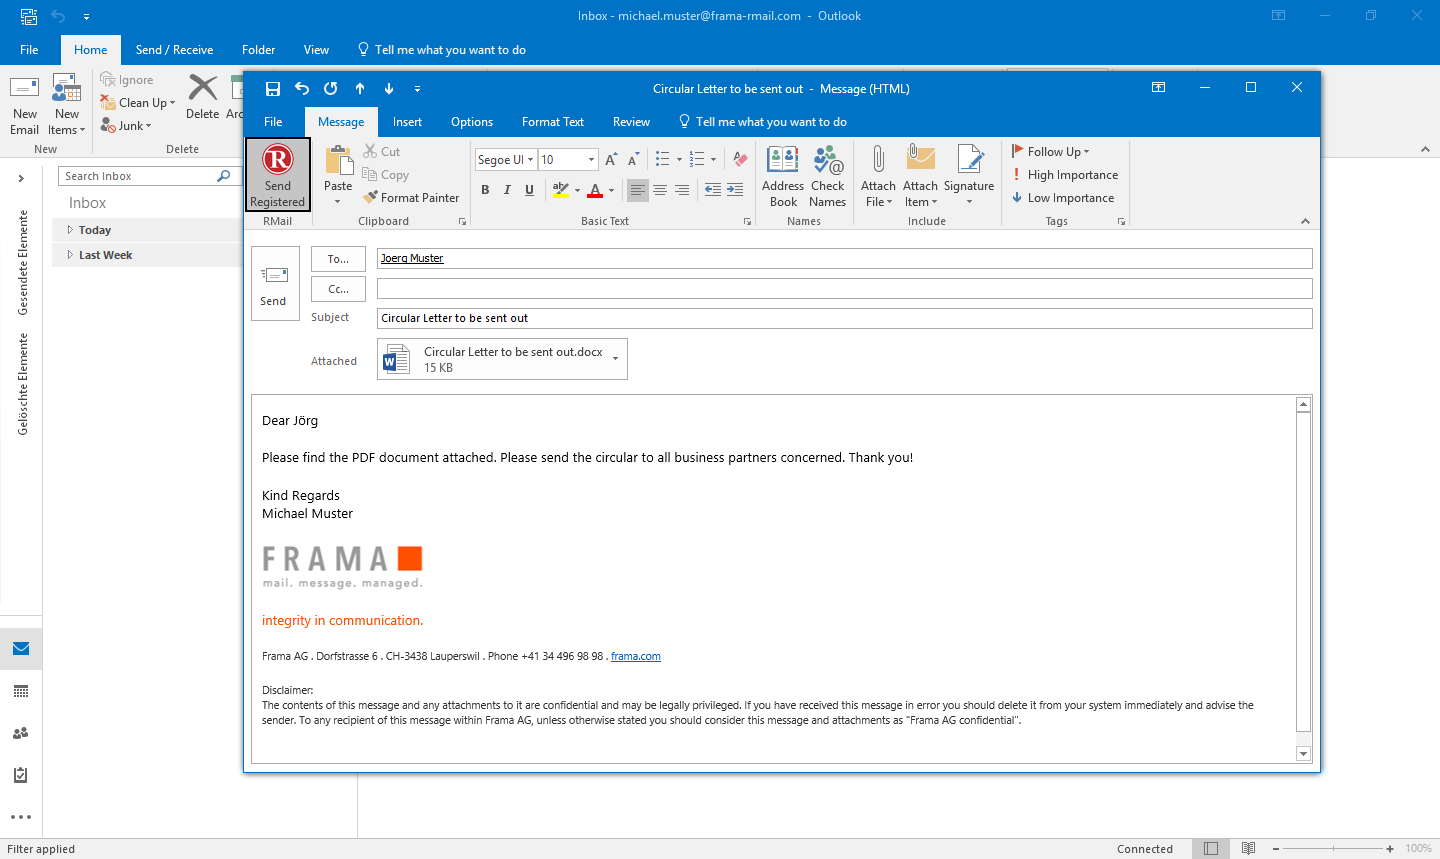 Convert attachments to PDF with Outlook - Step 2